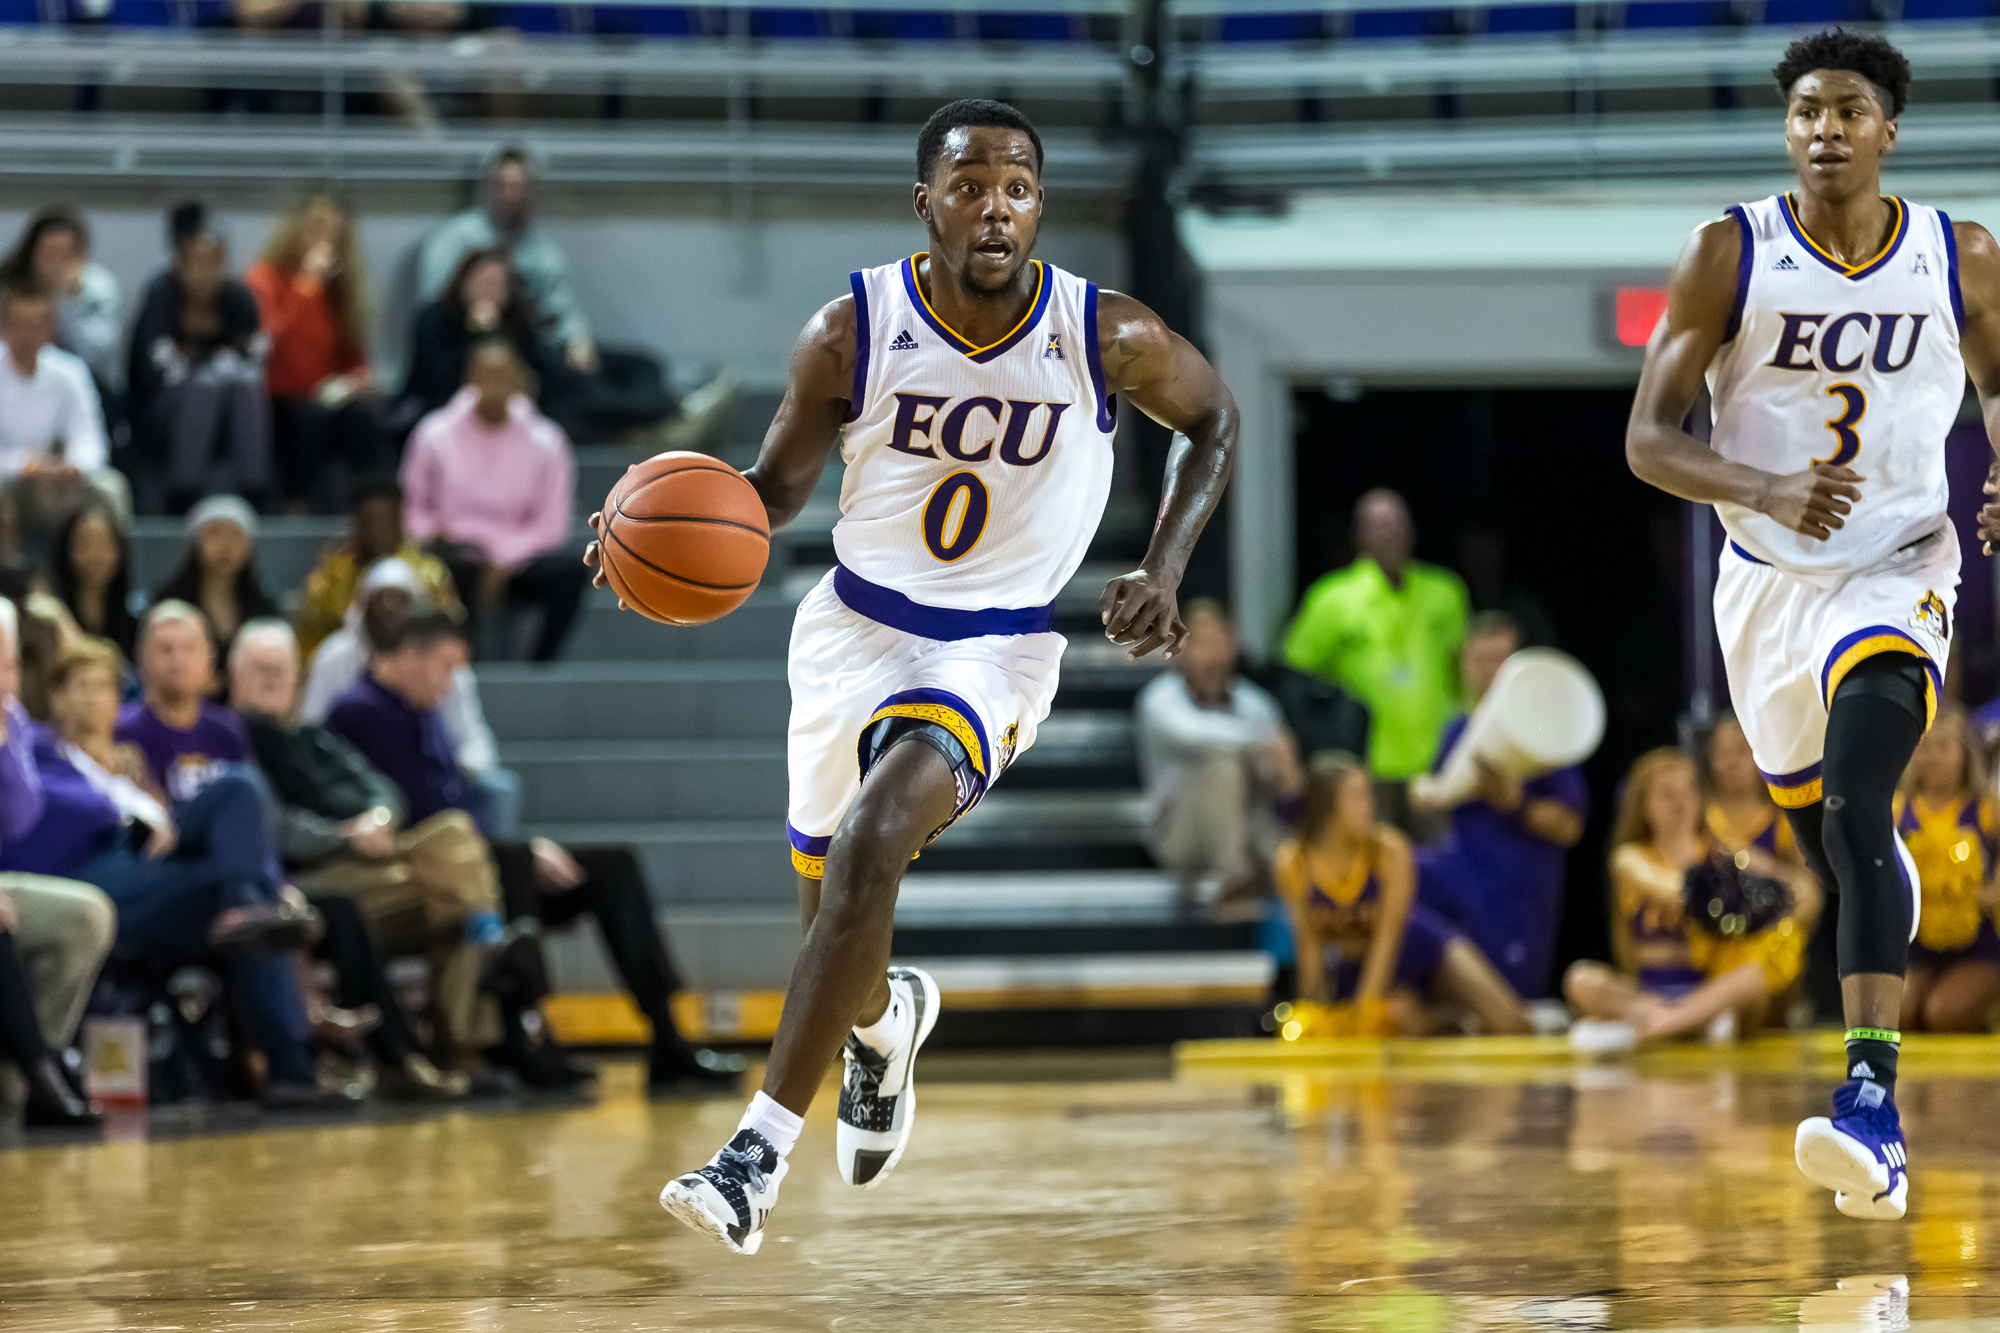 ecu reveals 2018-19 men's basketball schedule - east carolina